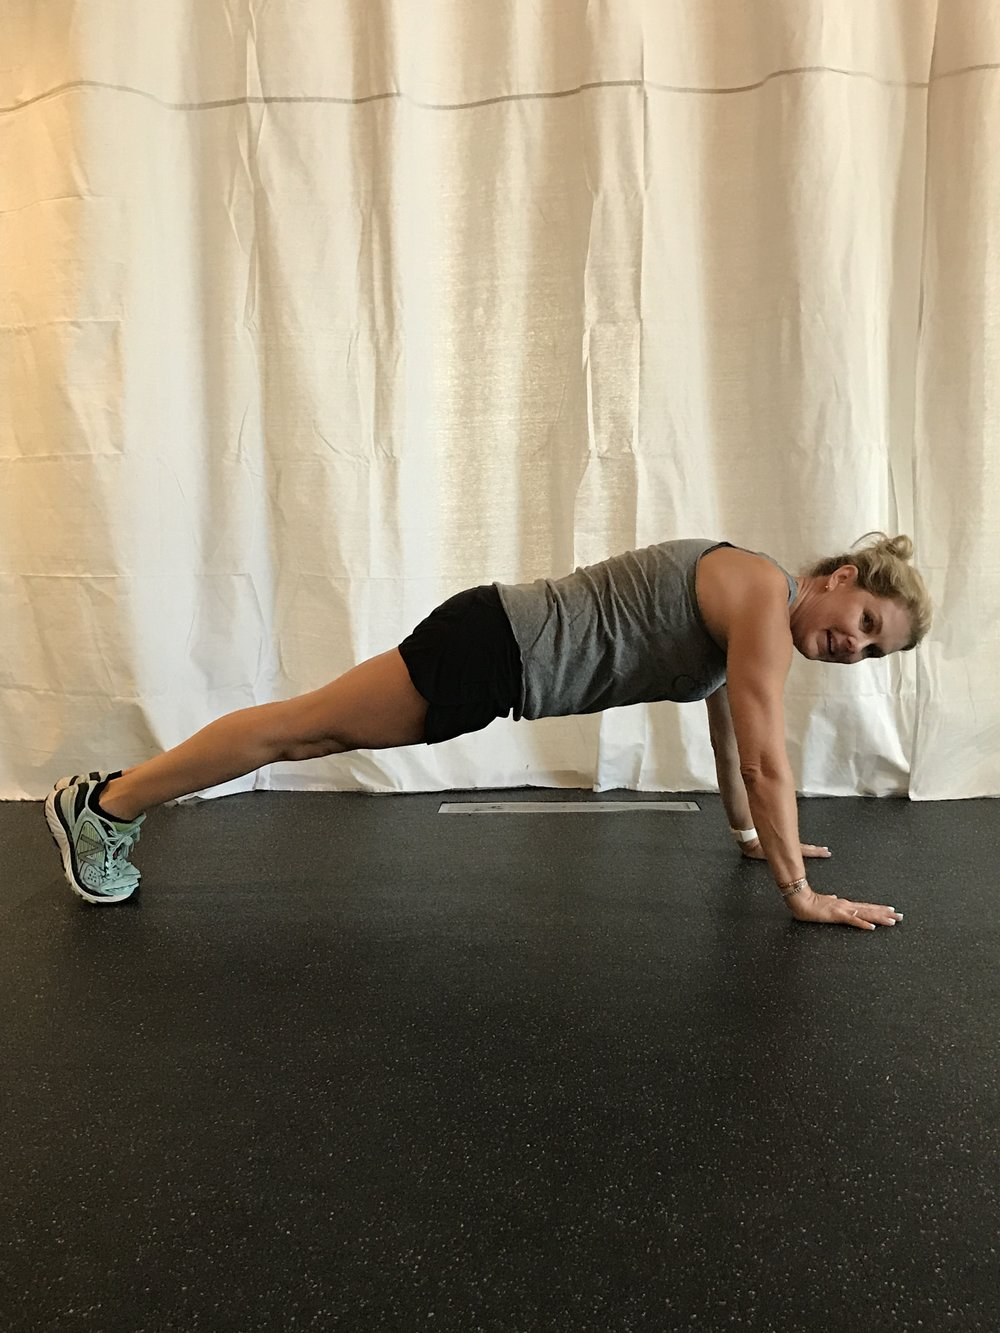 Top of the pushup: strong plank position